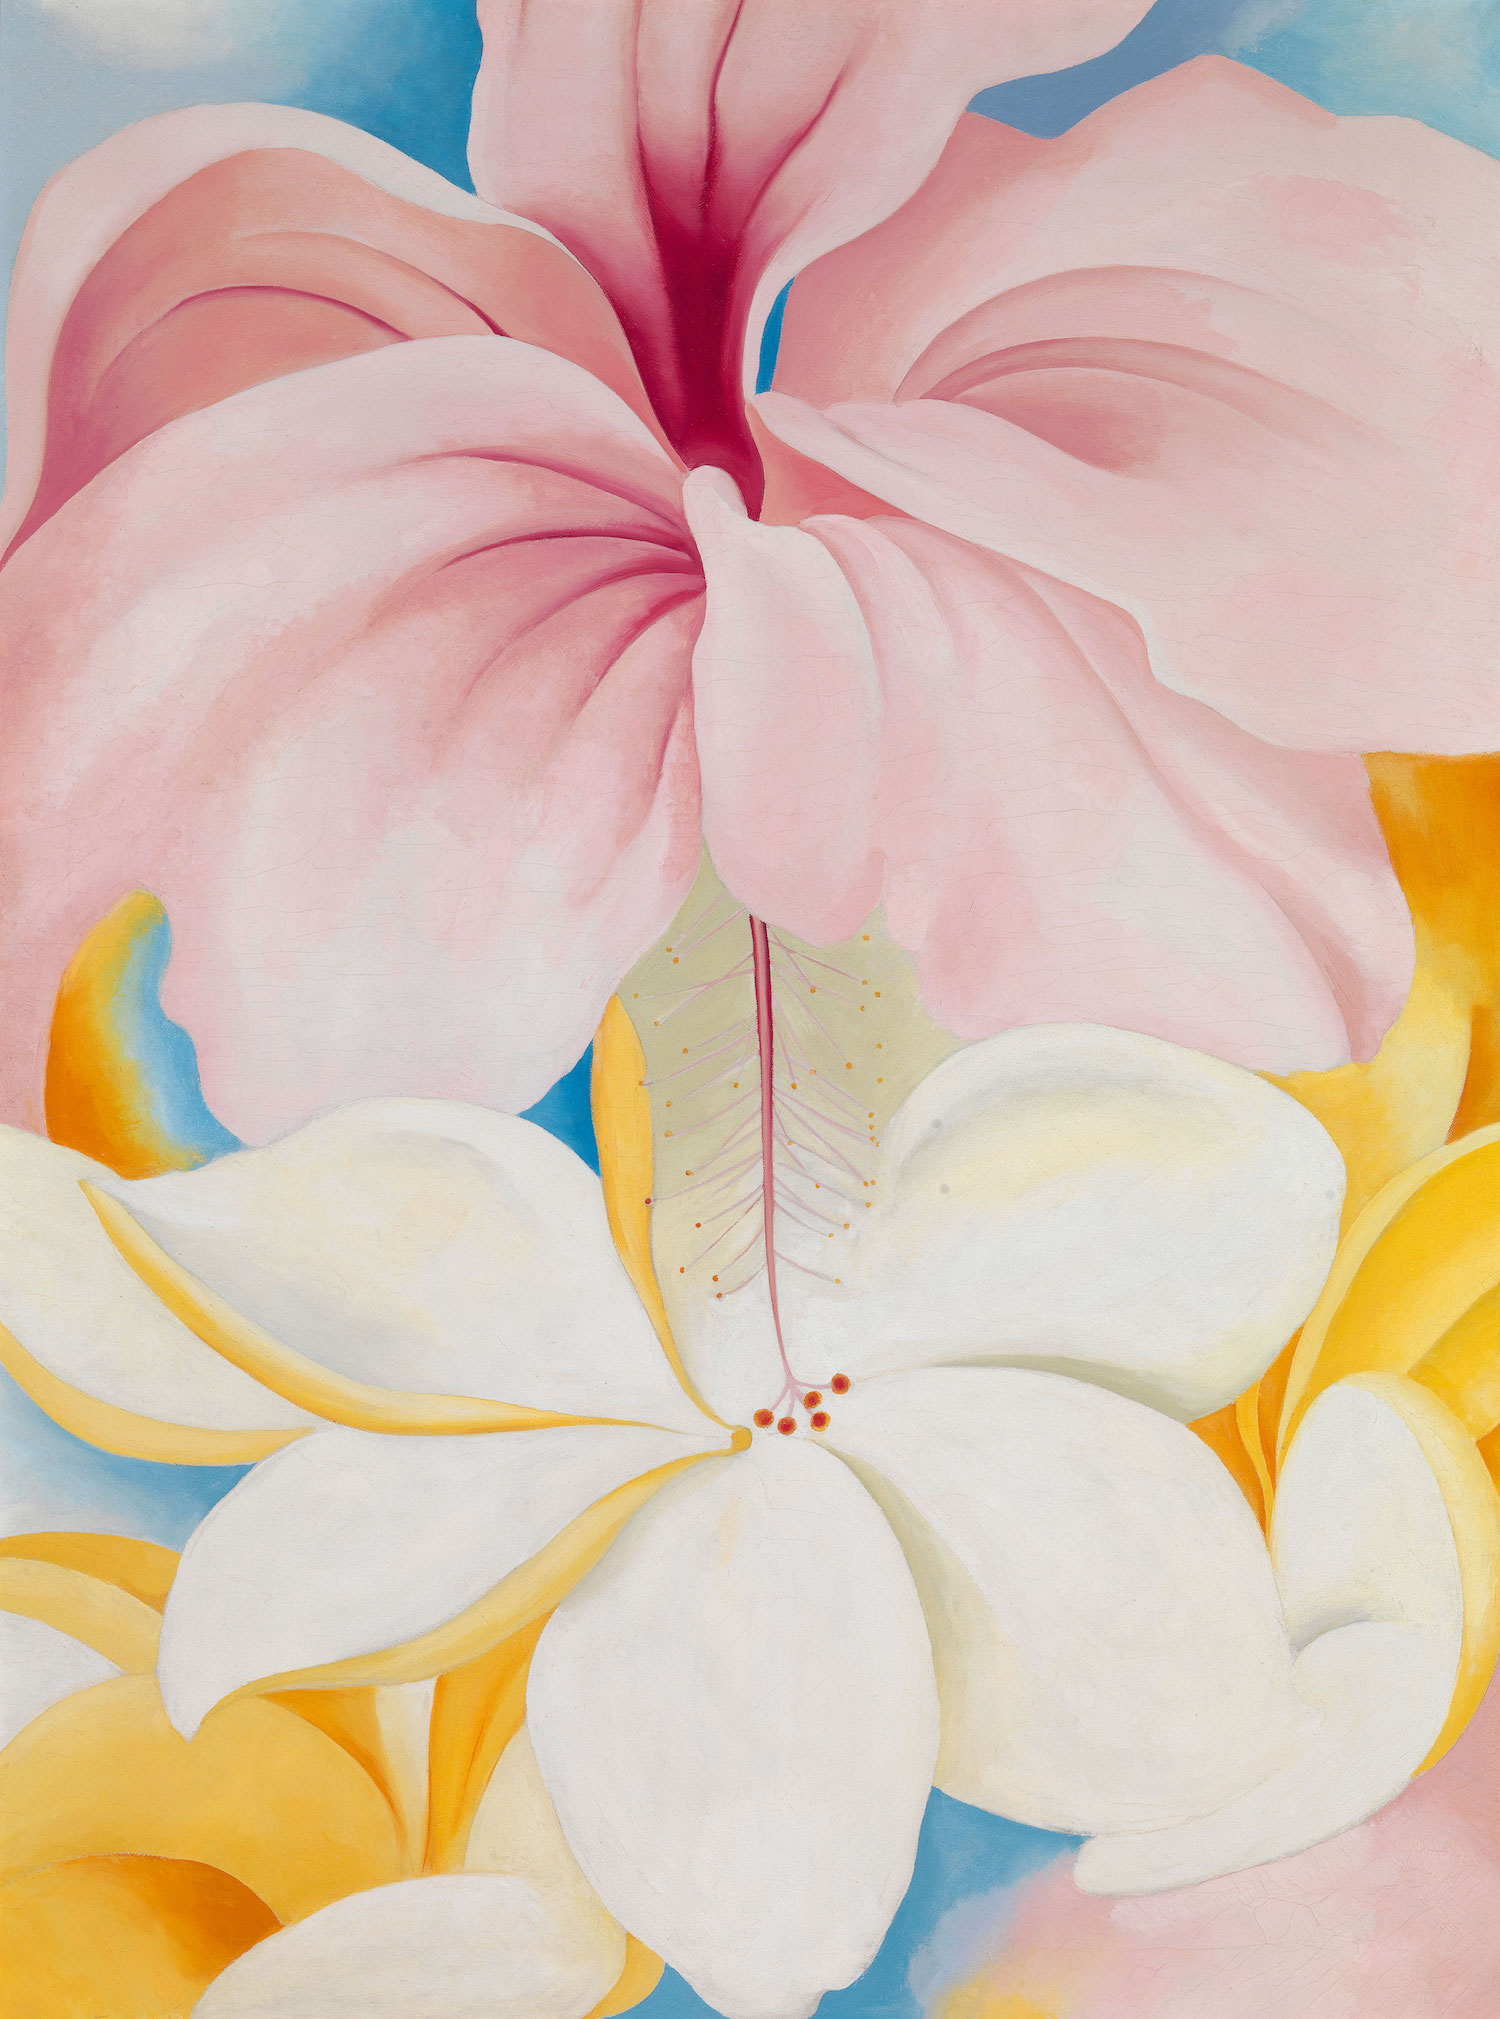 ArtDependence | The Symbolism of Flowers in the Art of Georgia O'Keeffe